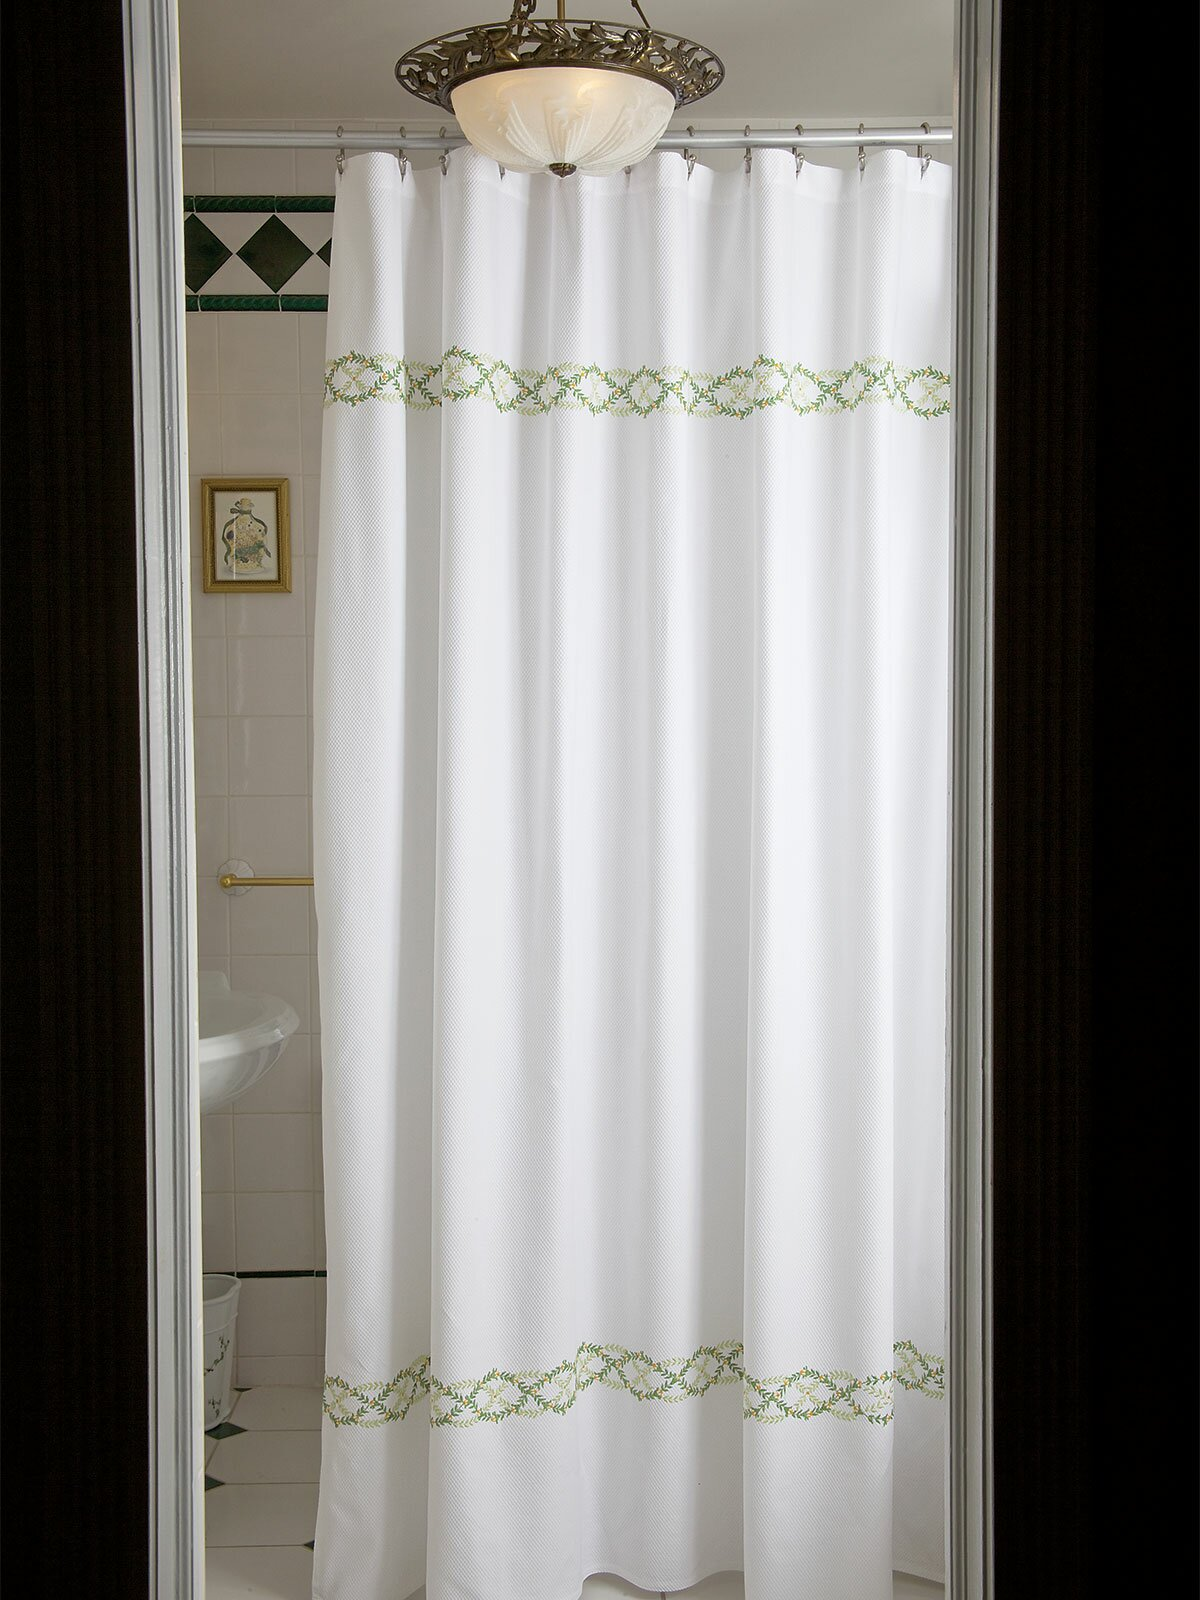 Curtain Restoration Hardware Shower Curtain Modern Shower Curtains Shower Curtain Rods